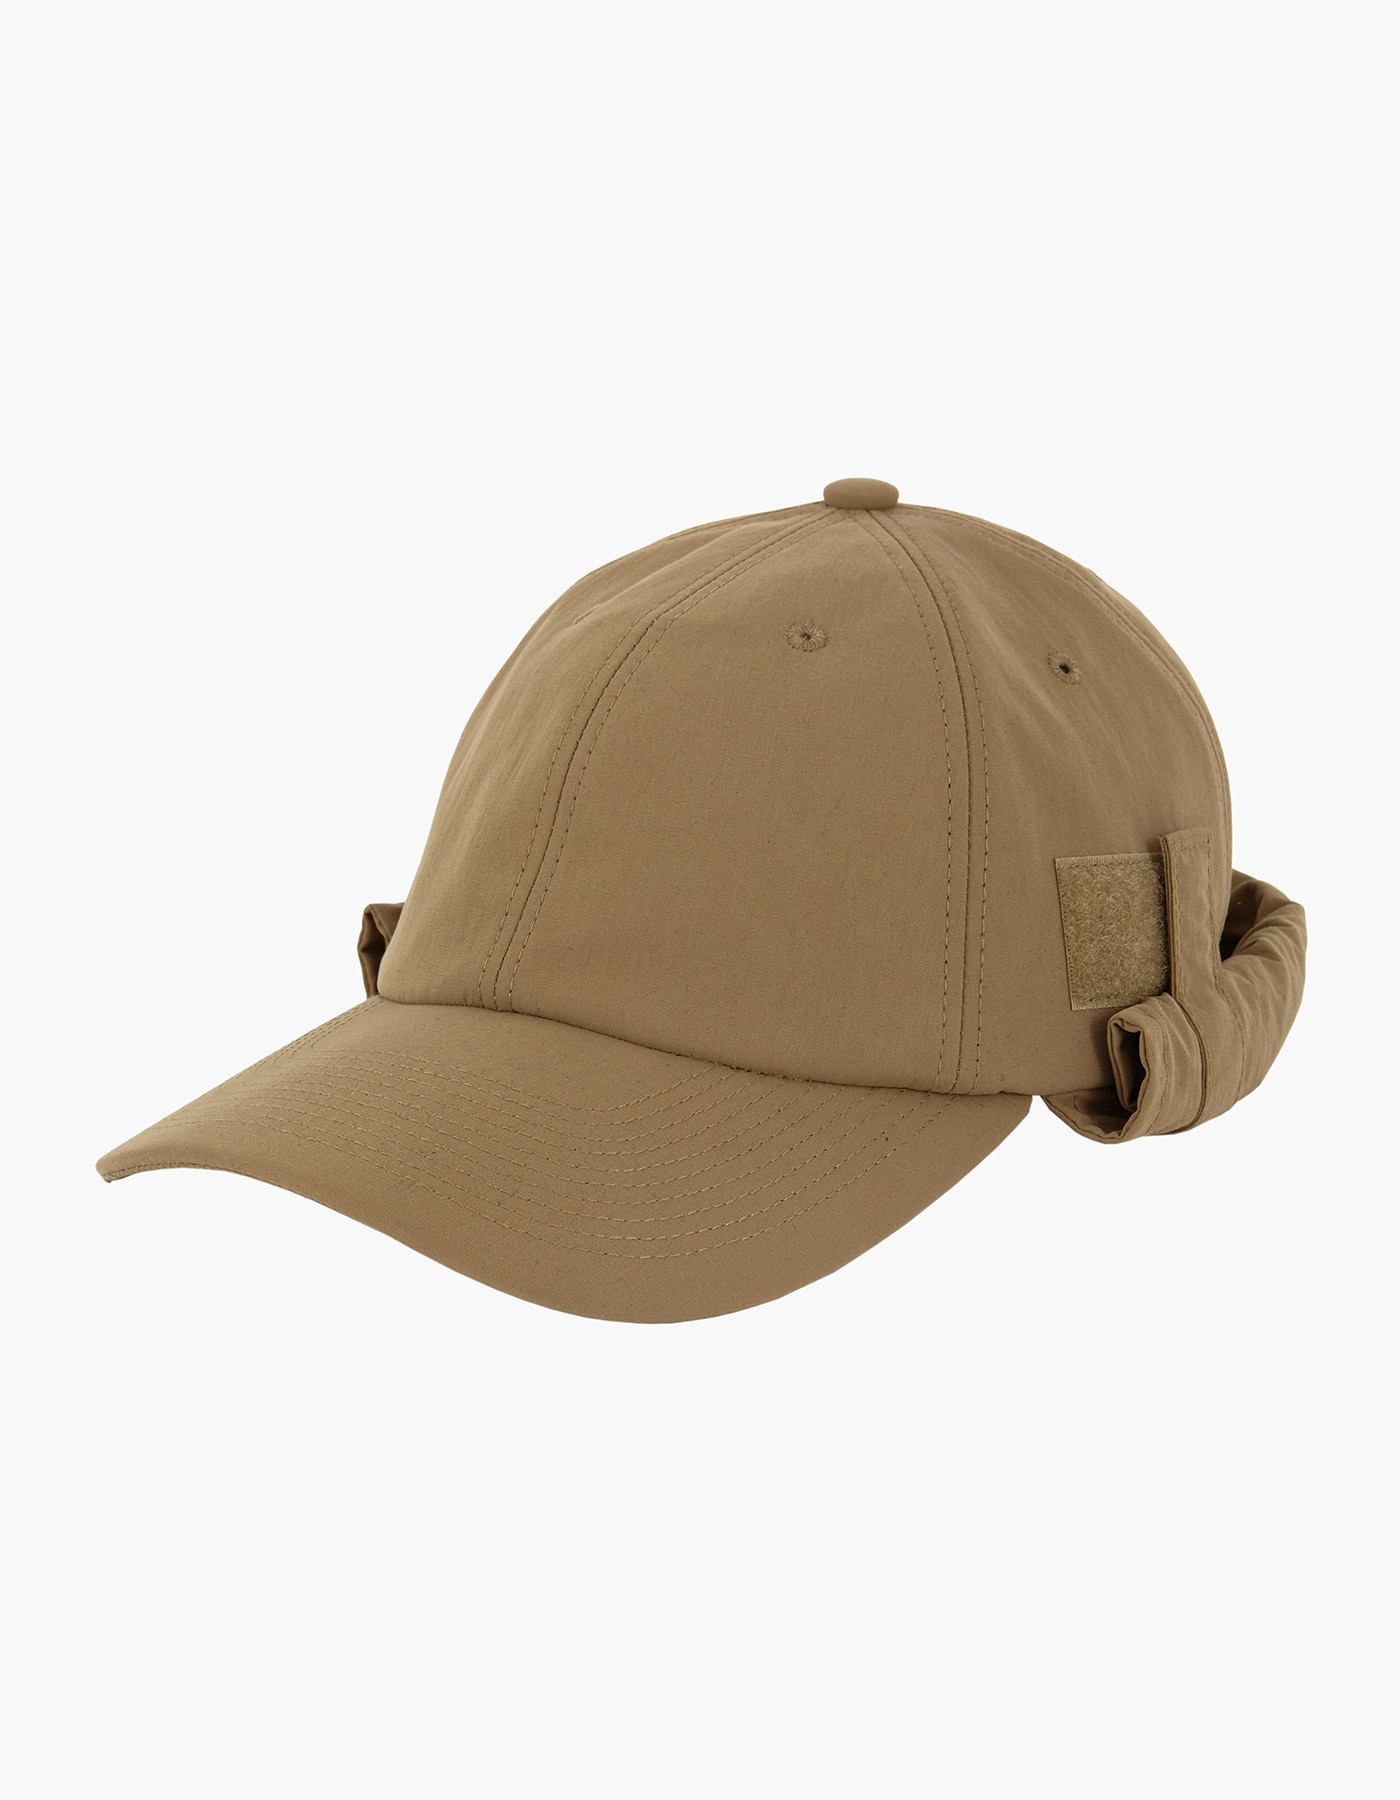 6 PANEL FLY FISHING CAP / KHAKI